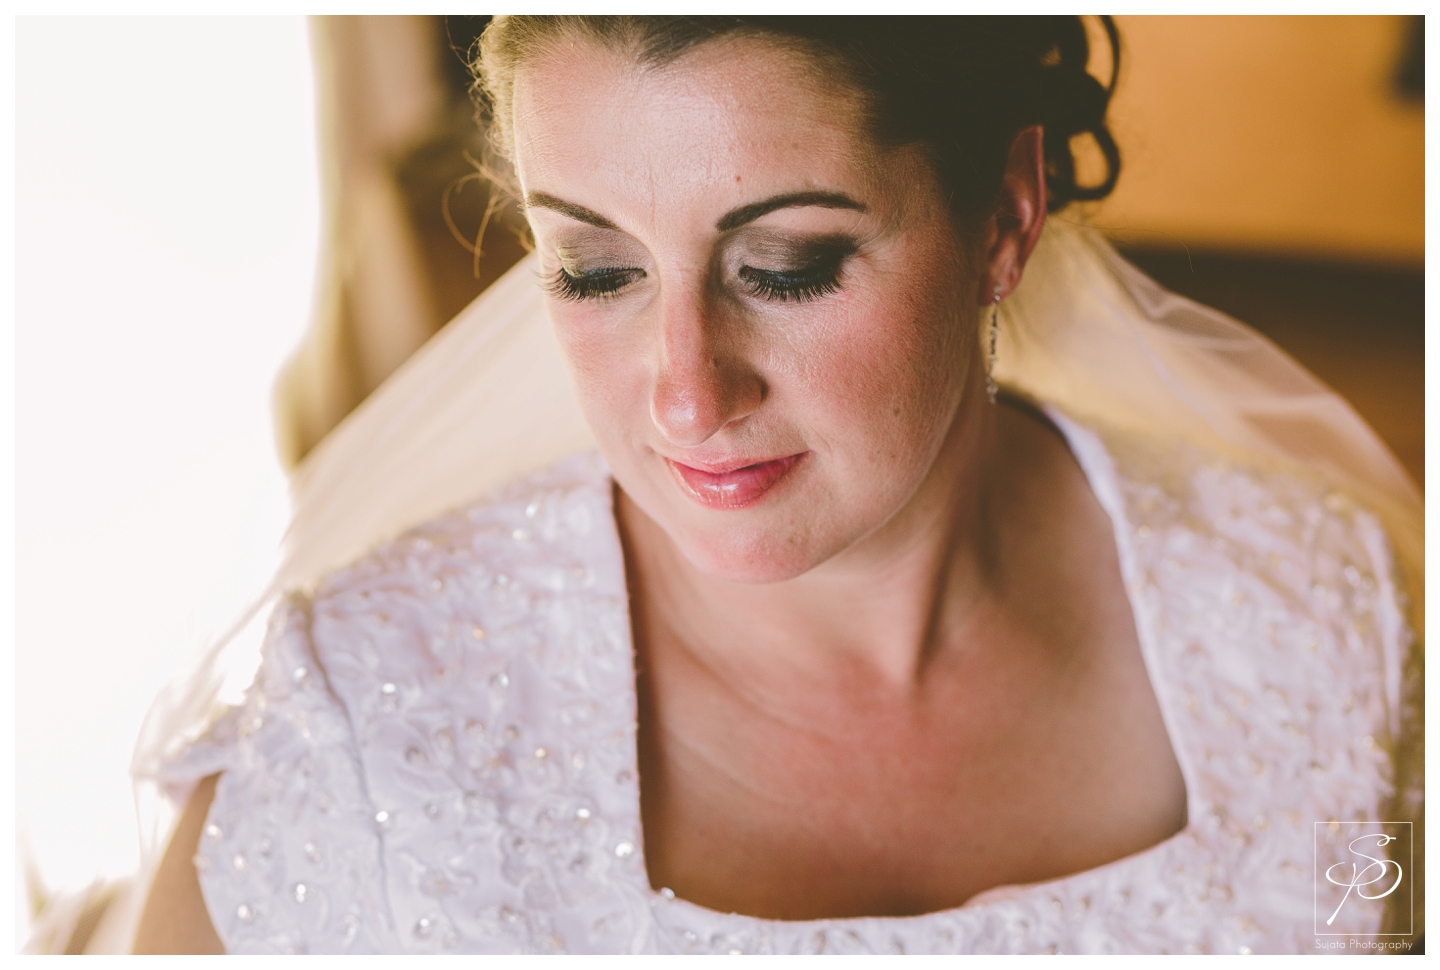 Close up portrait of bride